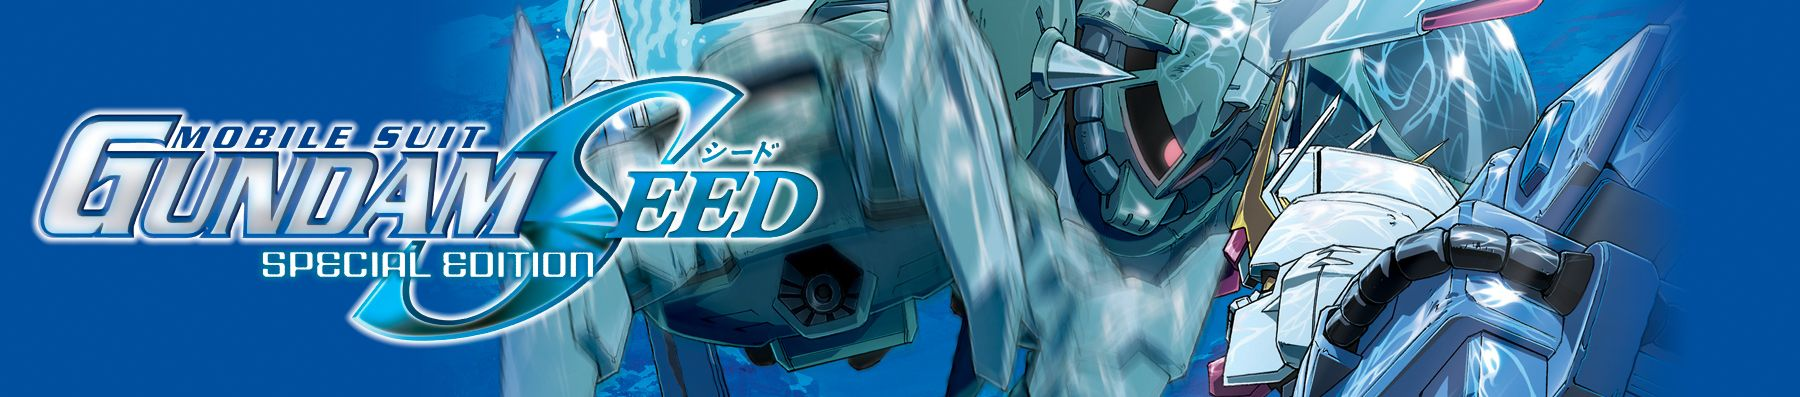 Dossier - Mobile Suit Gundam SEED - Les Special Edition